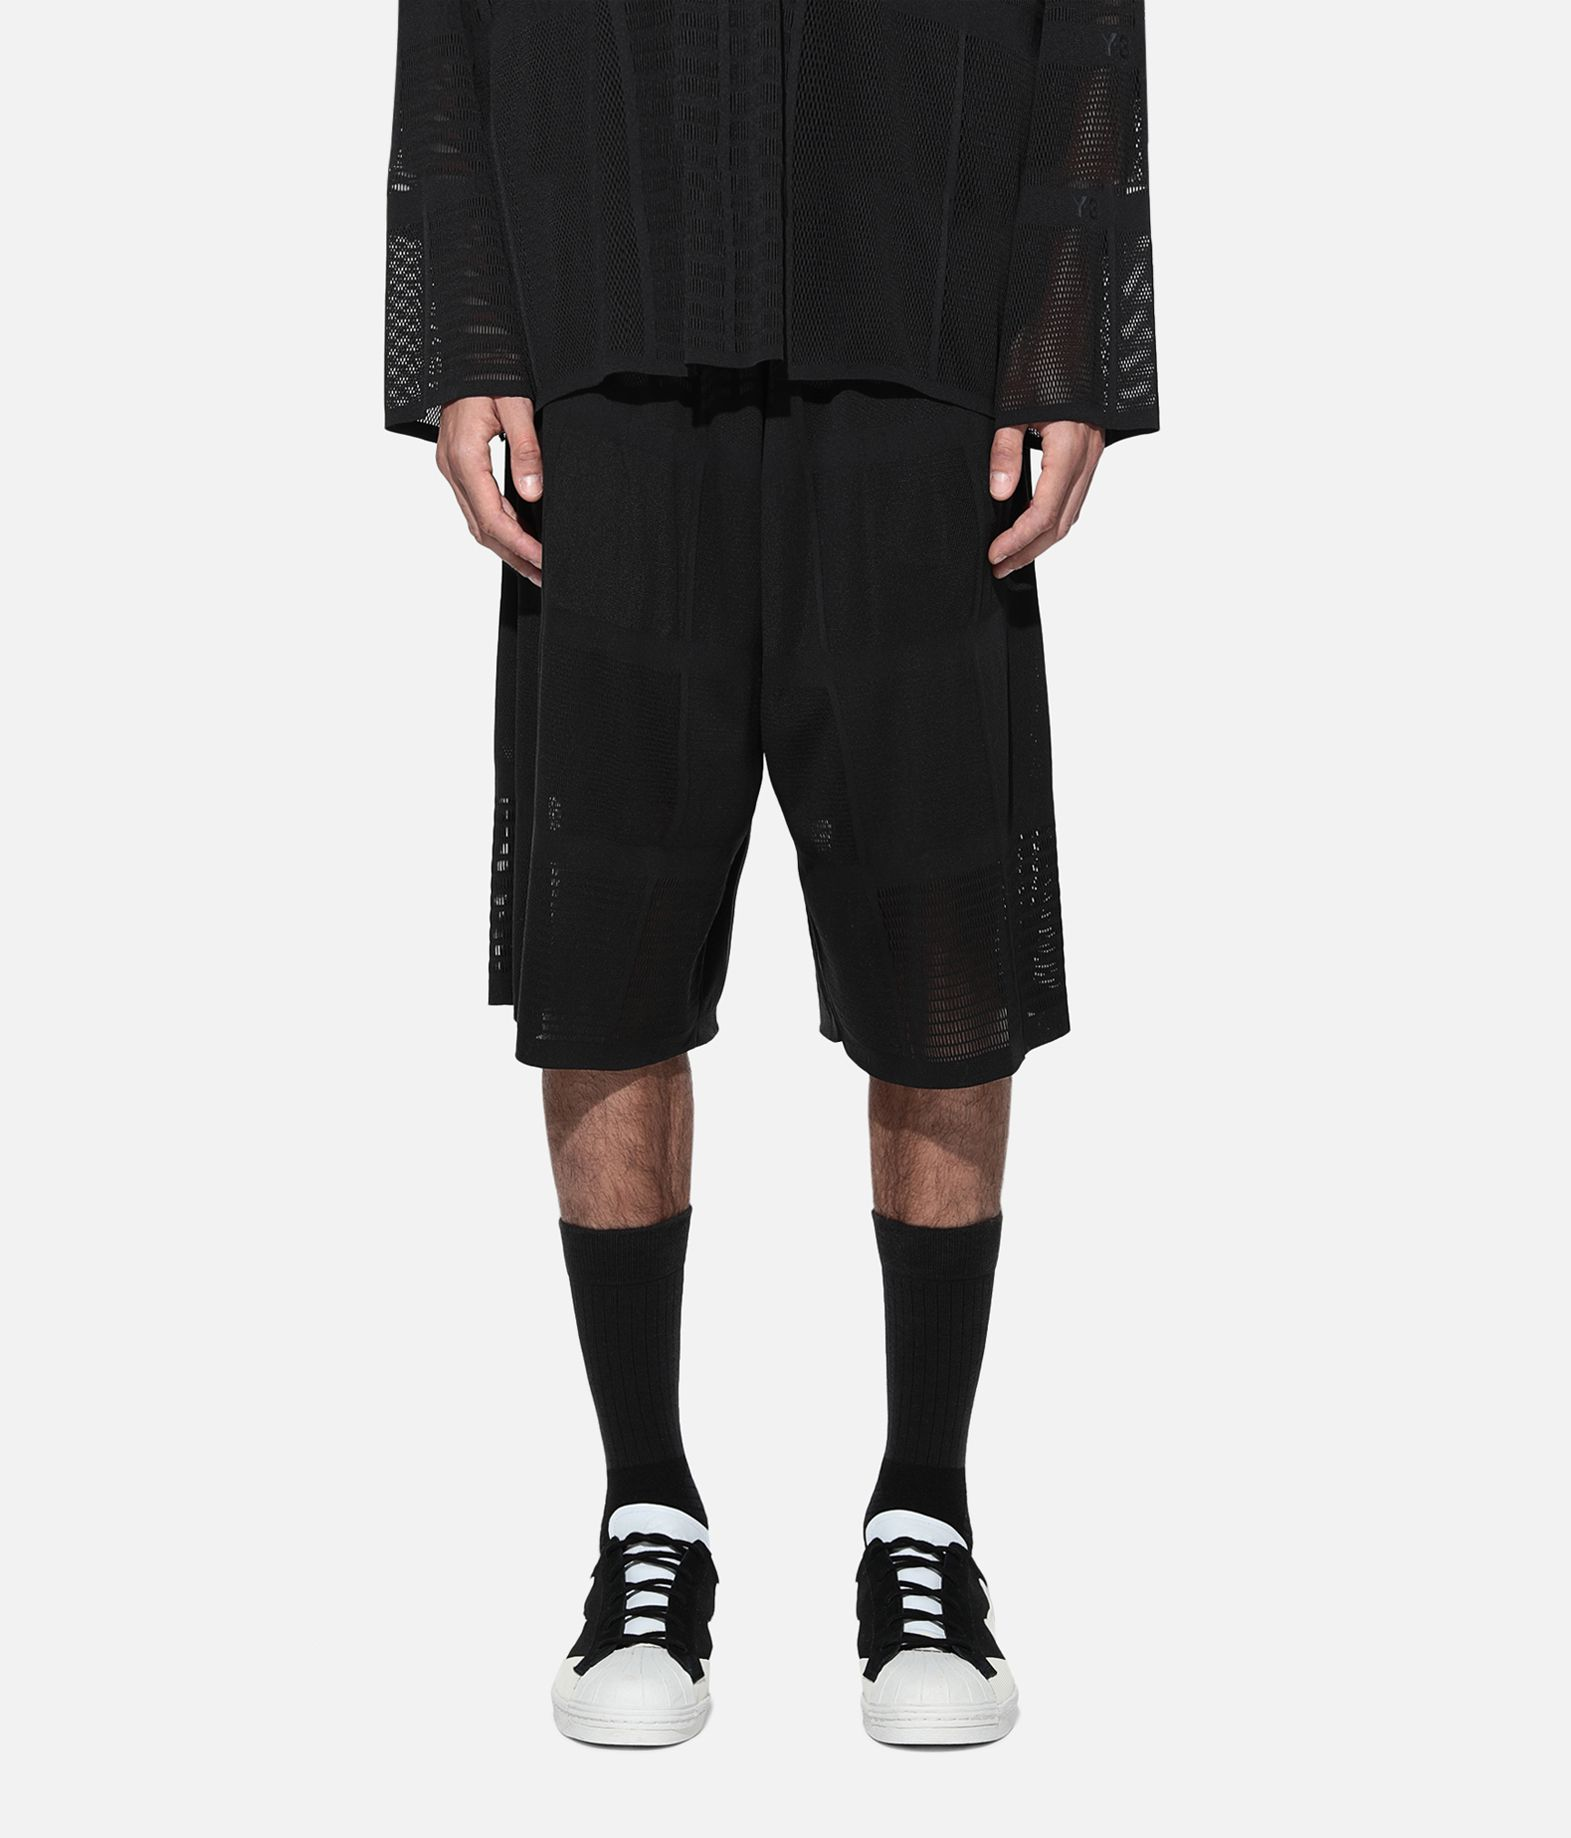 Y-3 Y-3 Patchwork Shorts Shorts Man r